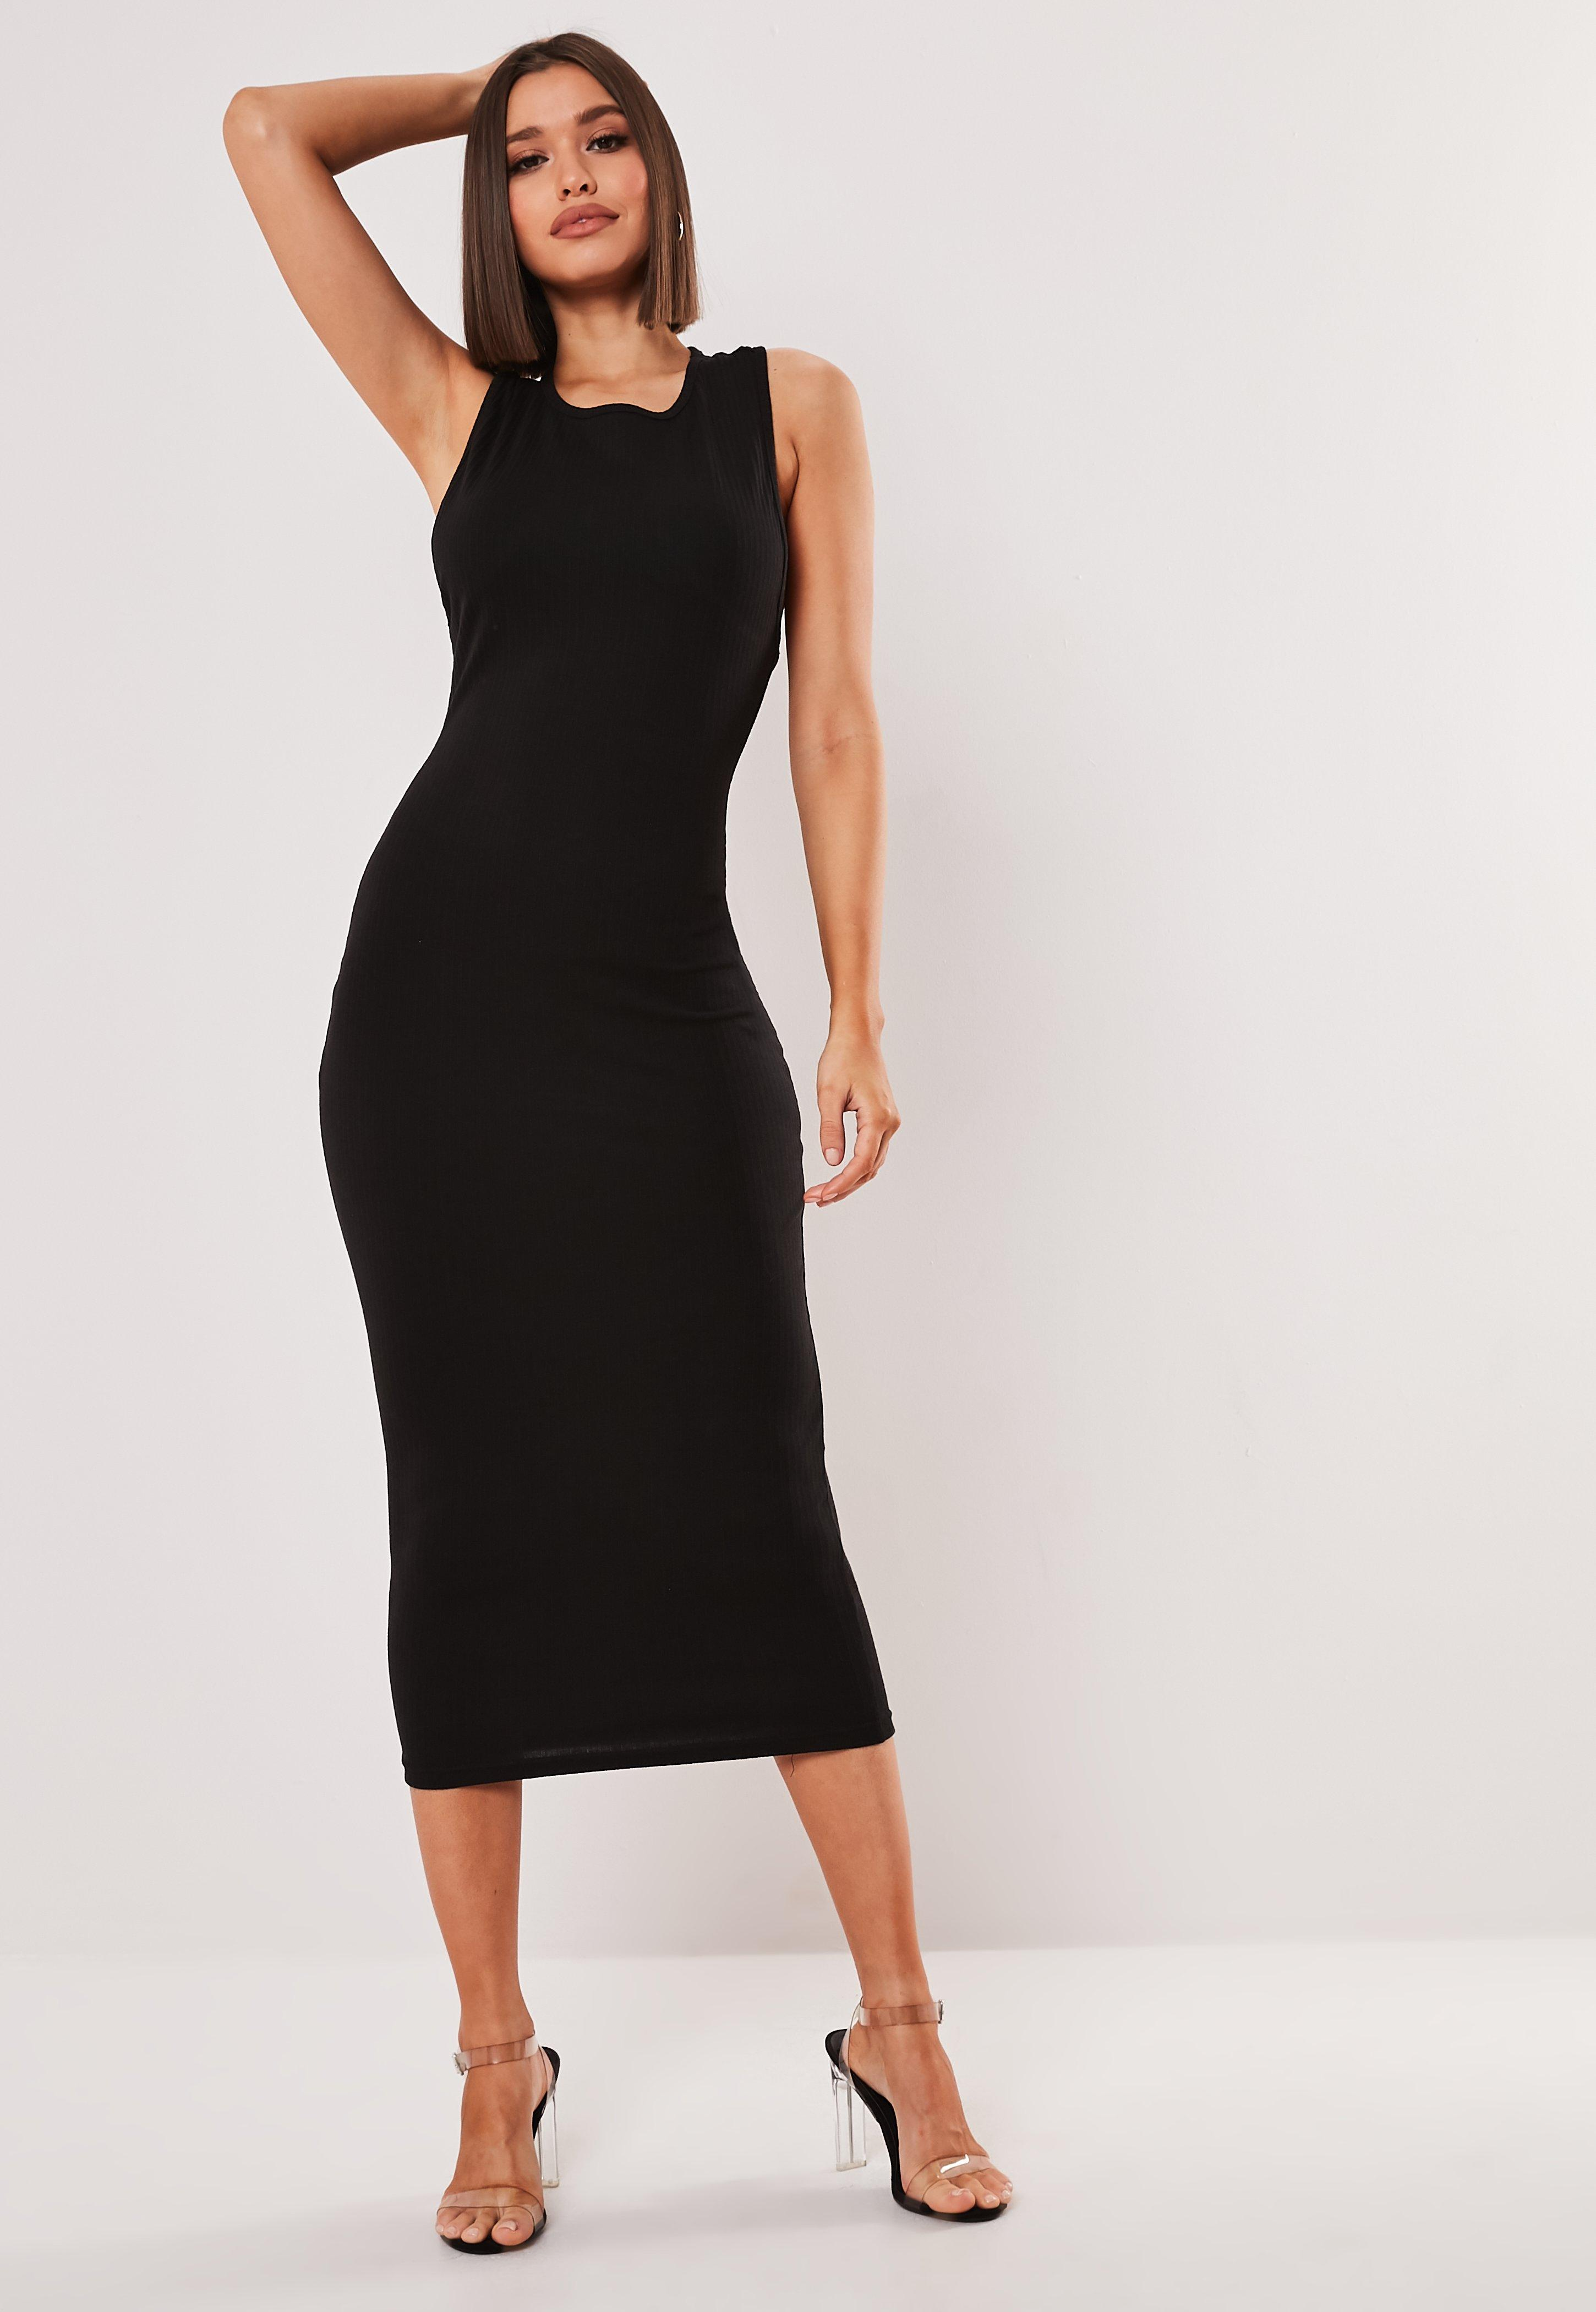 5d0052d00607 Black Ribbed Racer Back Bodycon Midi Dress | Missguided